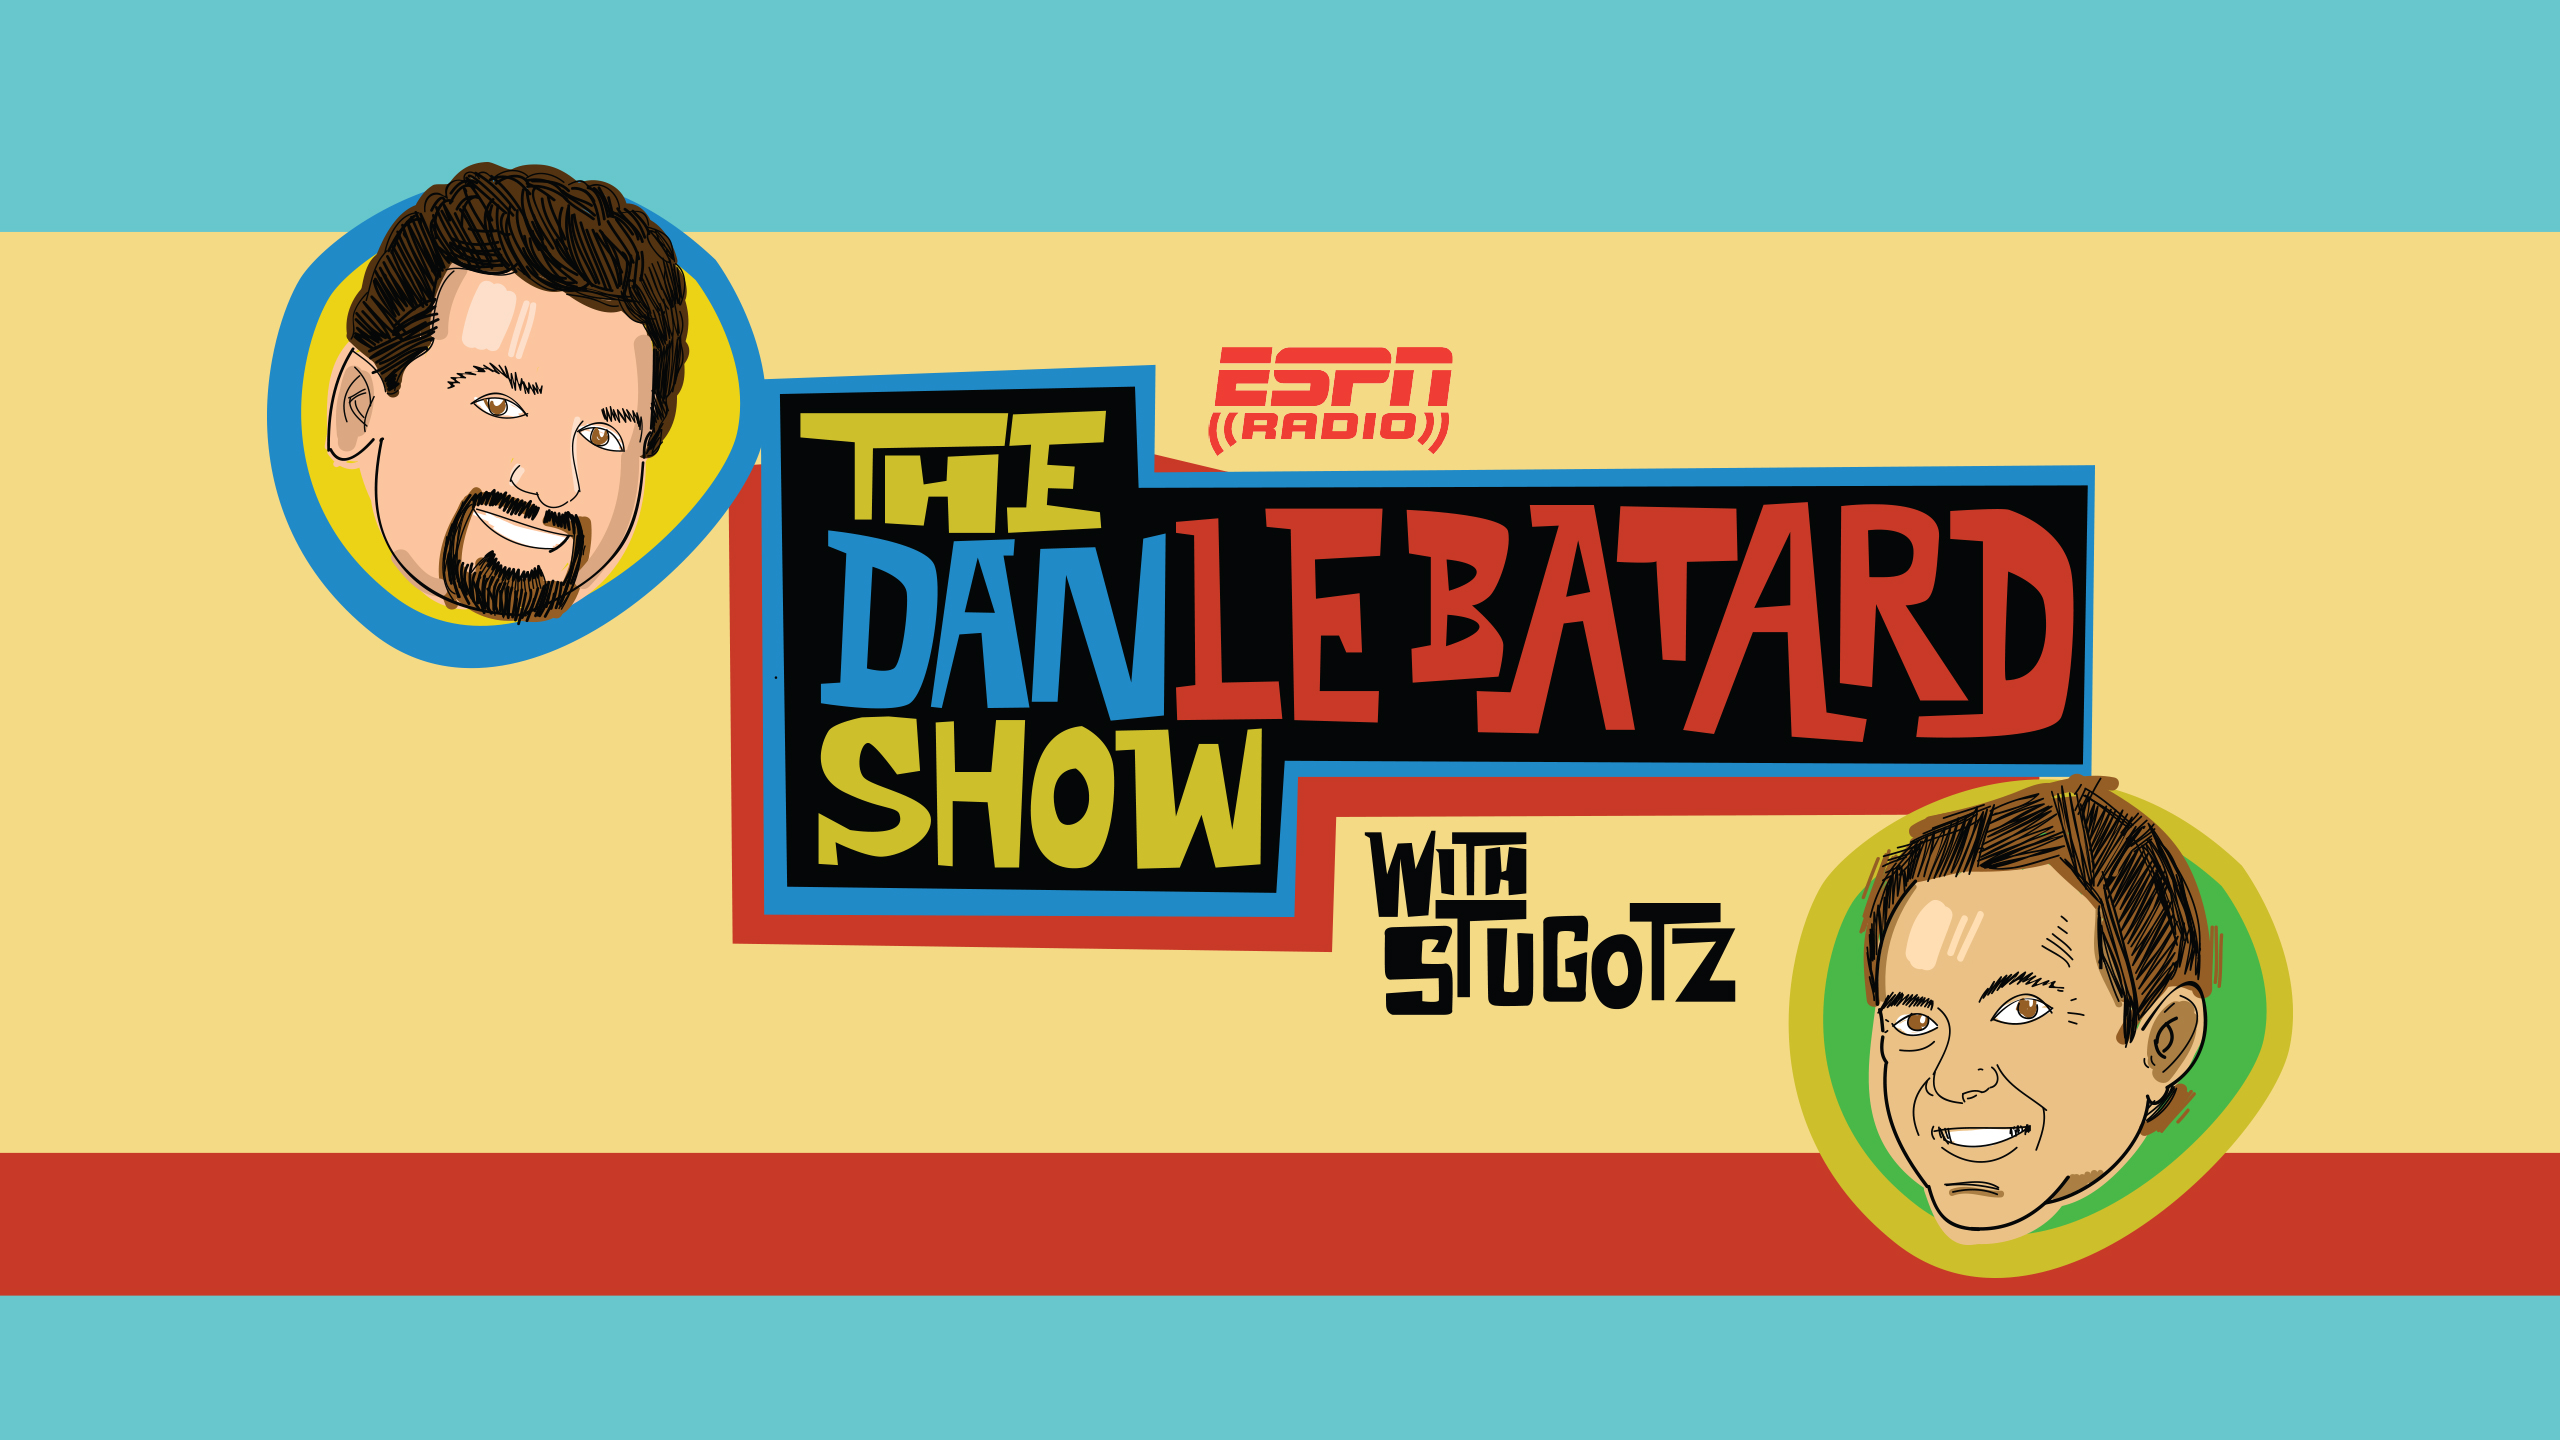 Tue, 9/25 - The Dan Le Batard Show with Stugotz Presented by Progressive